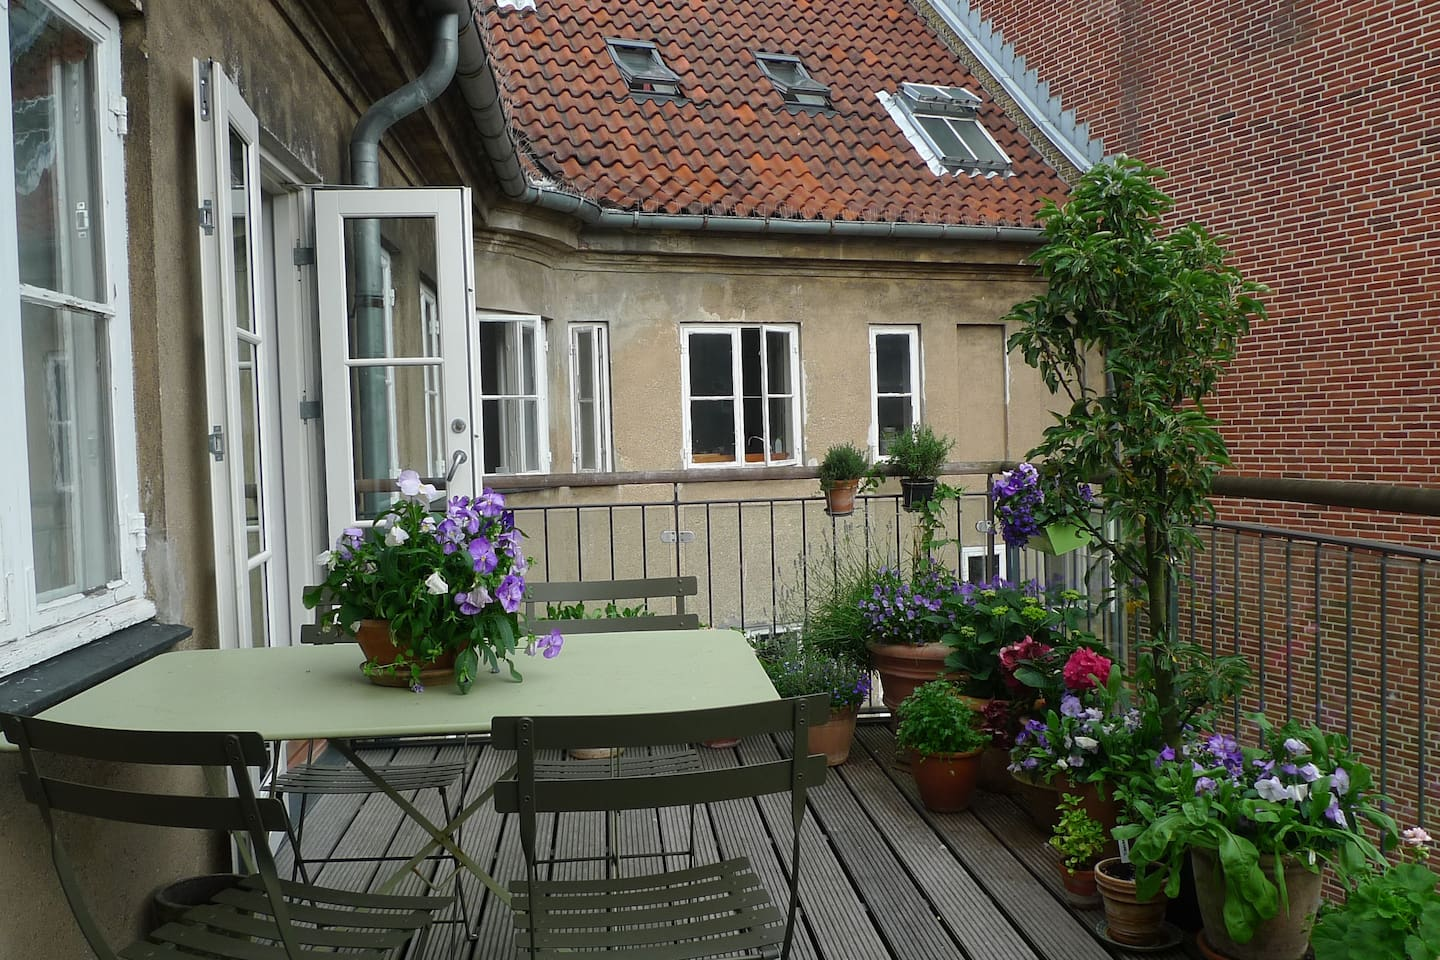 The spacious balcony (20 m2)